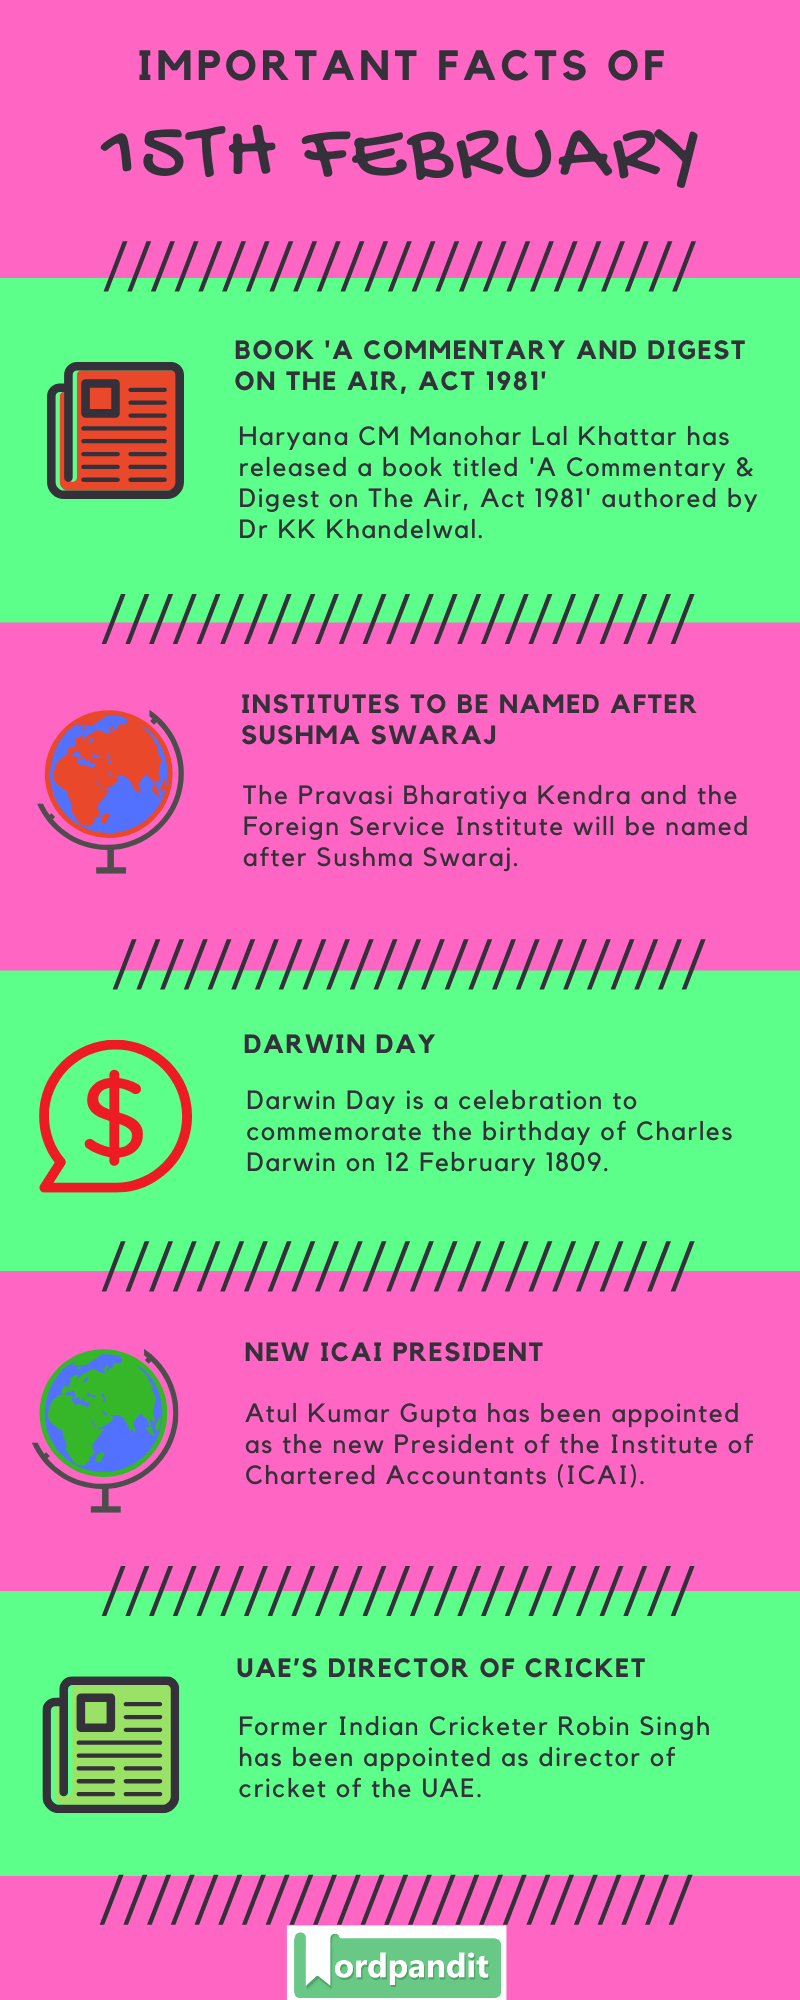 Daily Current Affairs 15 February 2020 Current Affairs Quiz 15 February 2020 Current Affairs Infographic